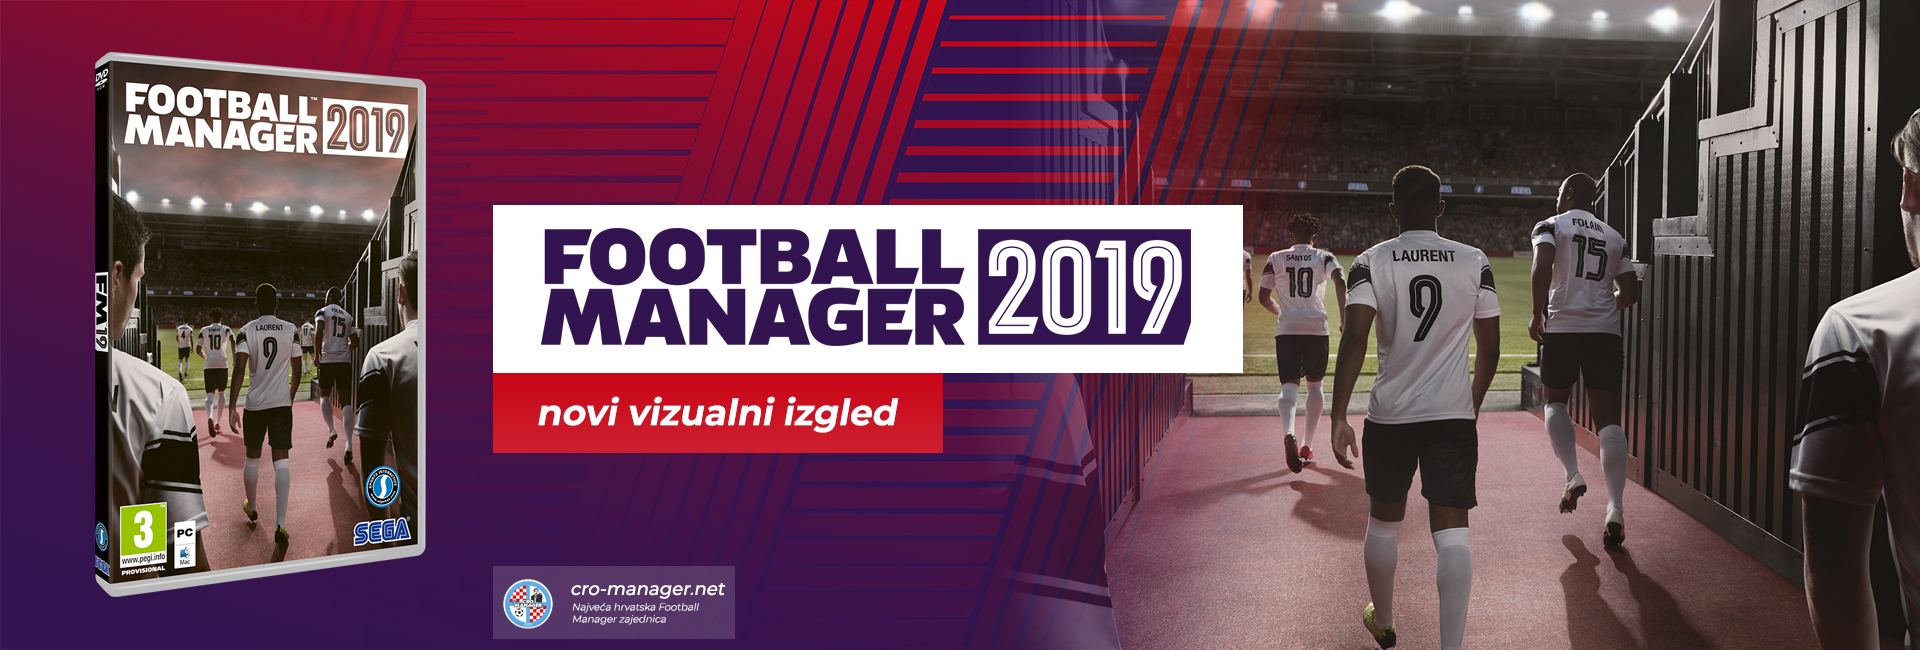 football-manager-2019-new-visual-look